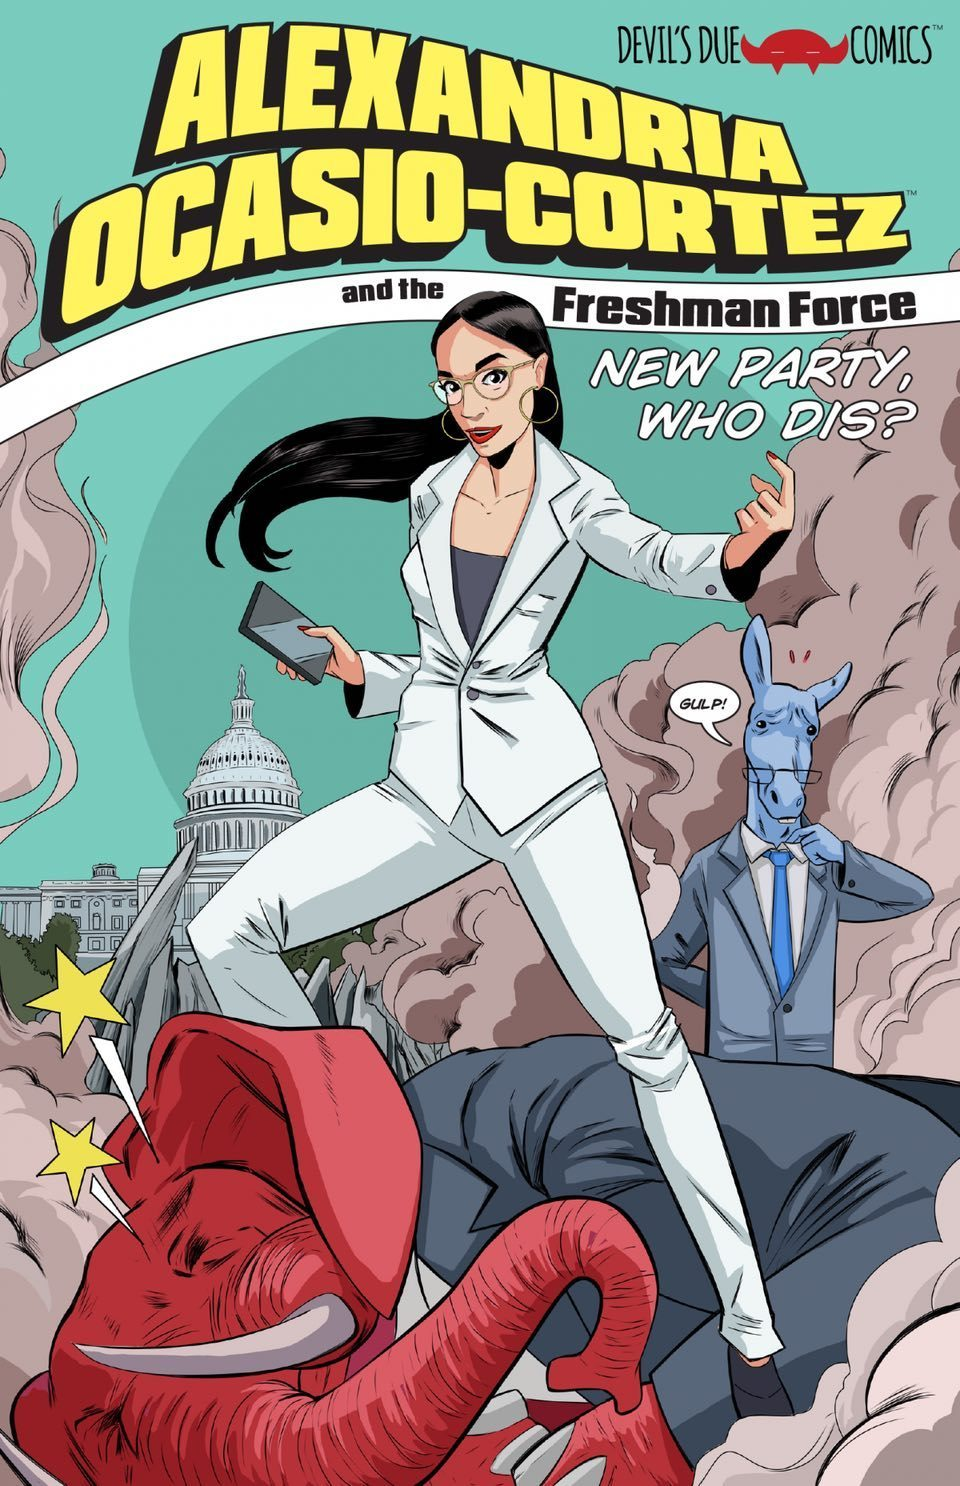 https___blogs-images.forbes.com_rachelkramerbussel_files_2019_02_alexandria-ocasio-cortez-comic-book-freshman-force-devils-due-comics-1200x1857